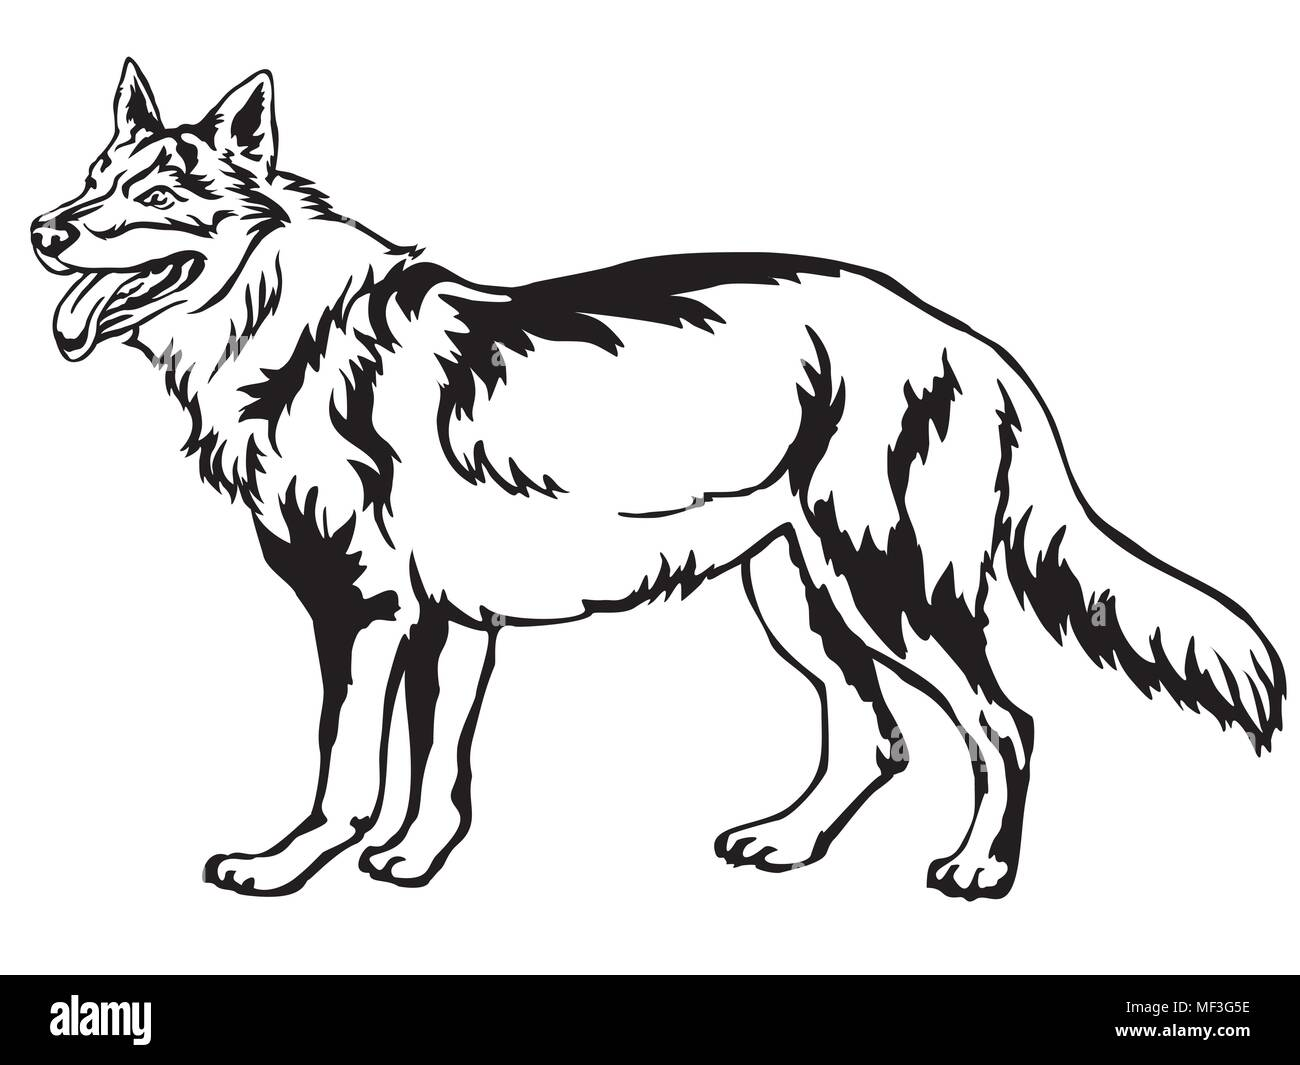 Decorative portrait of standing in profile Czechoslovakian Wolfdog, vector isolated illustration in black color on white background - Stock Image